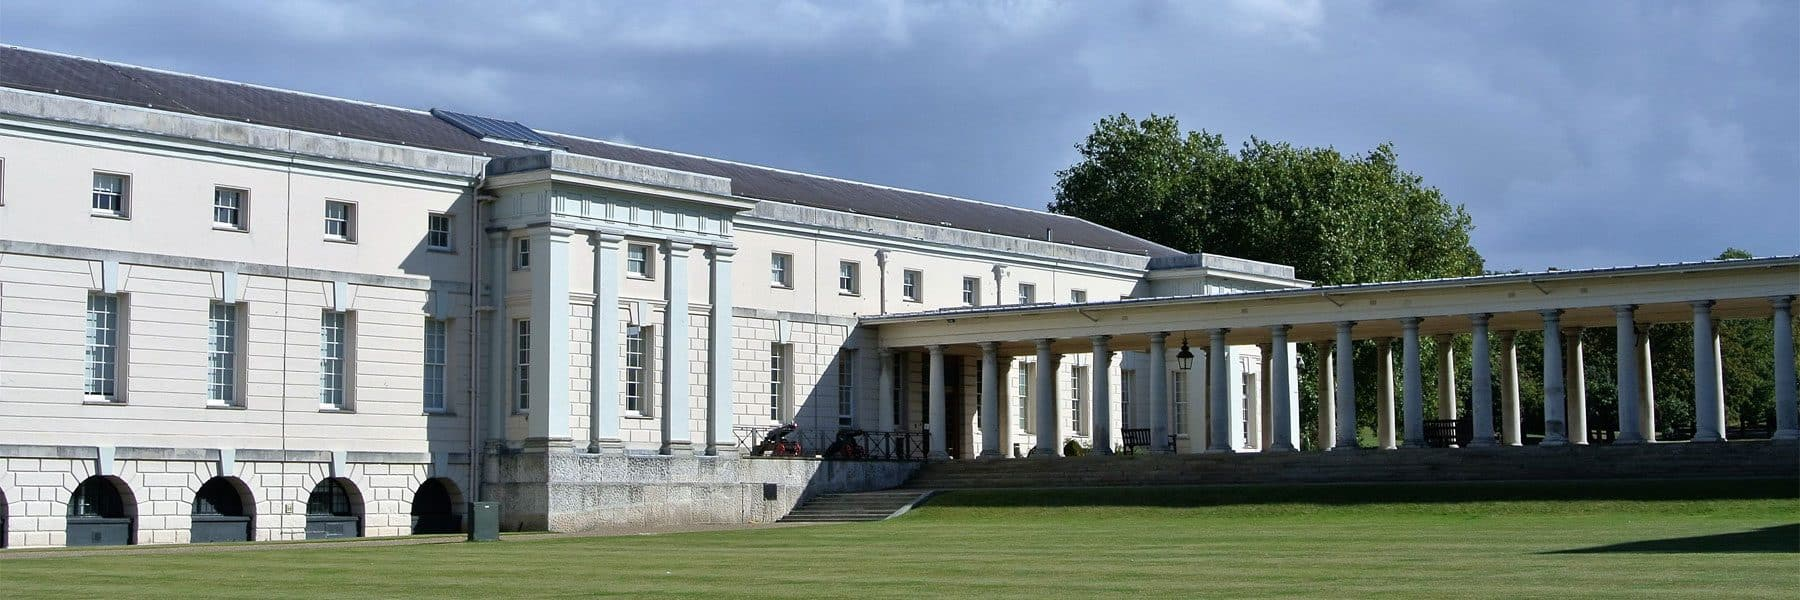 Queens House, Royal Borough of Greenwich